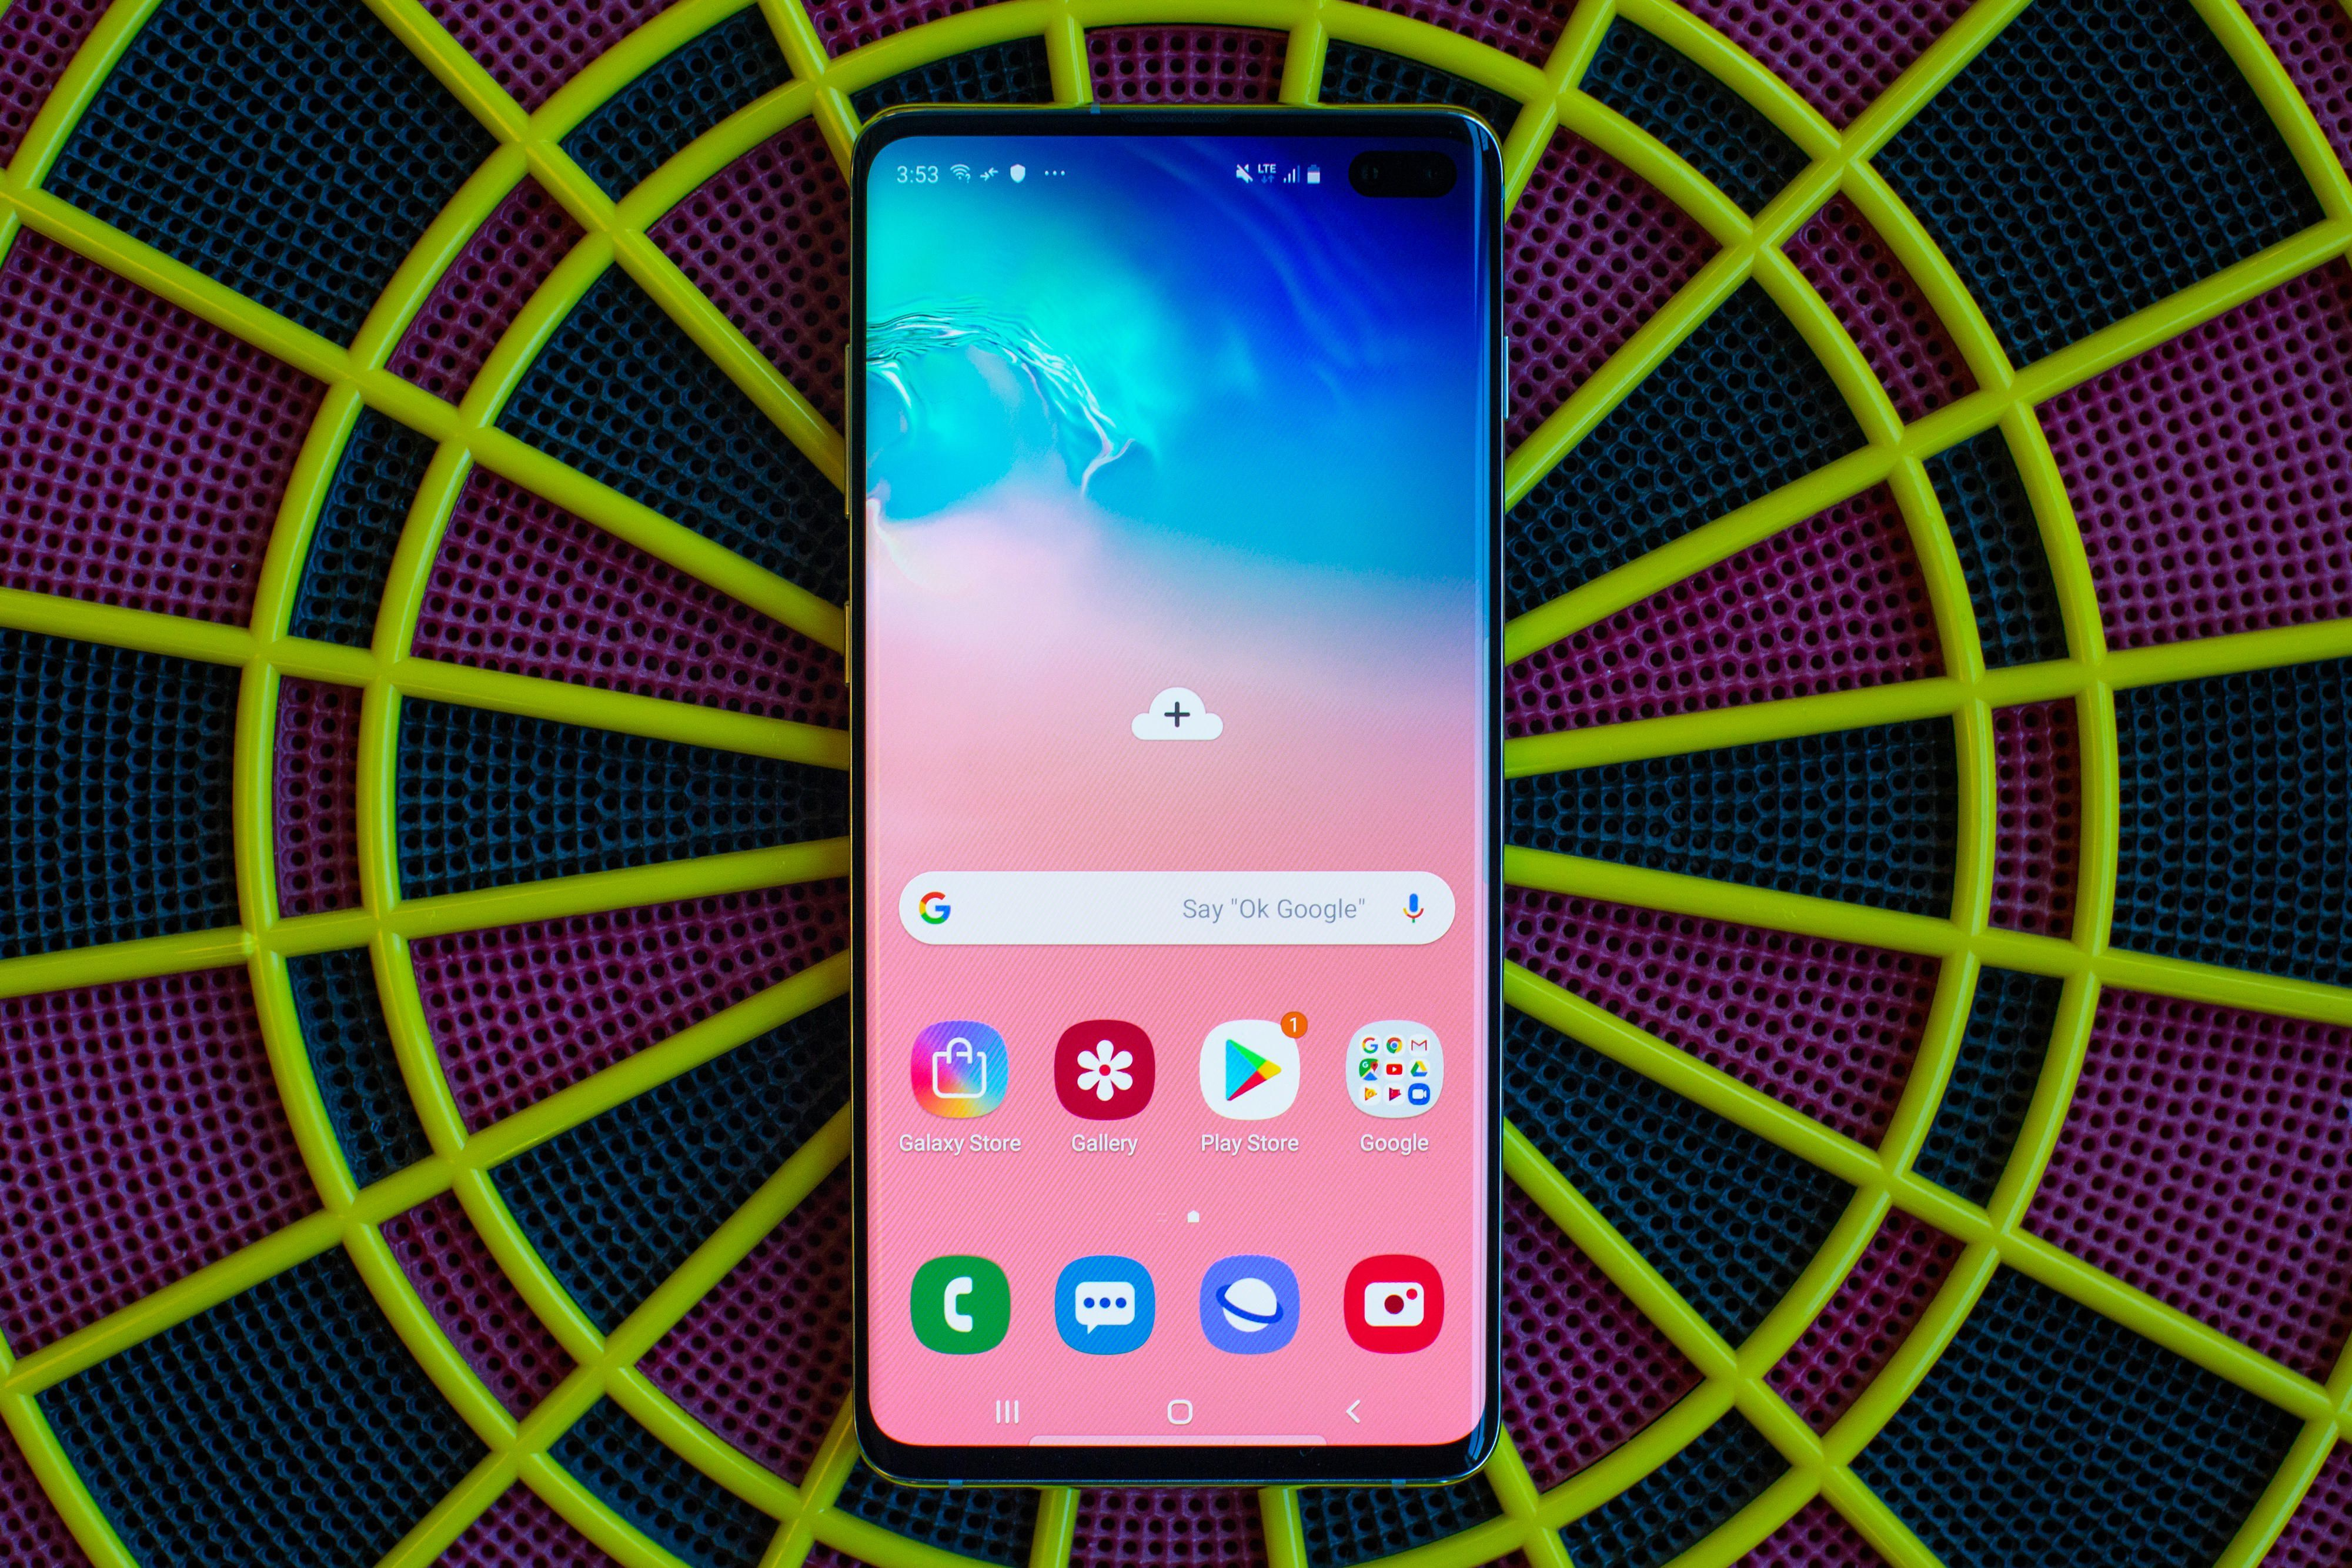 Galaxy s10 plus ongoing review whats good and bad today